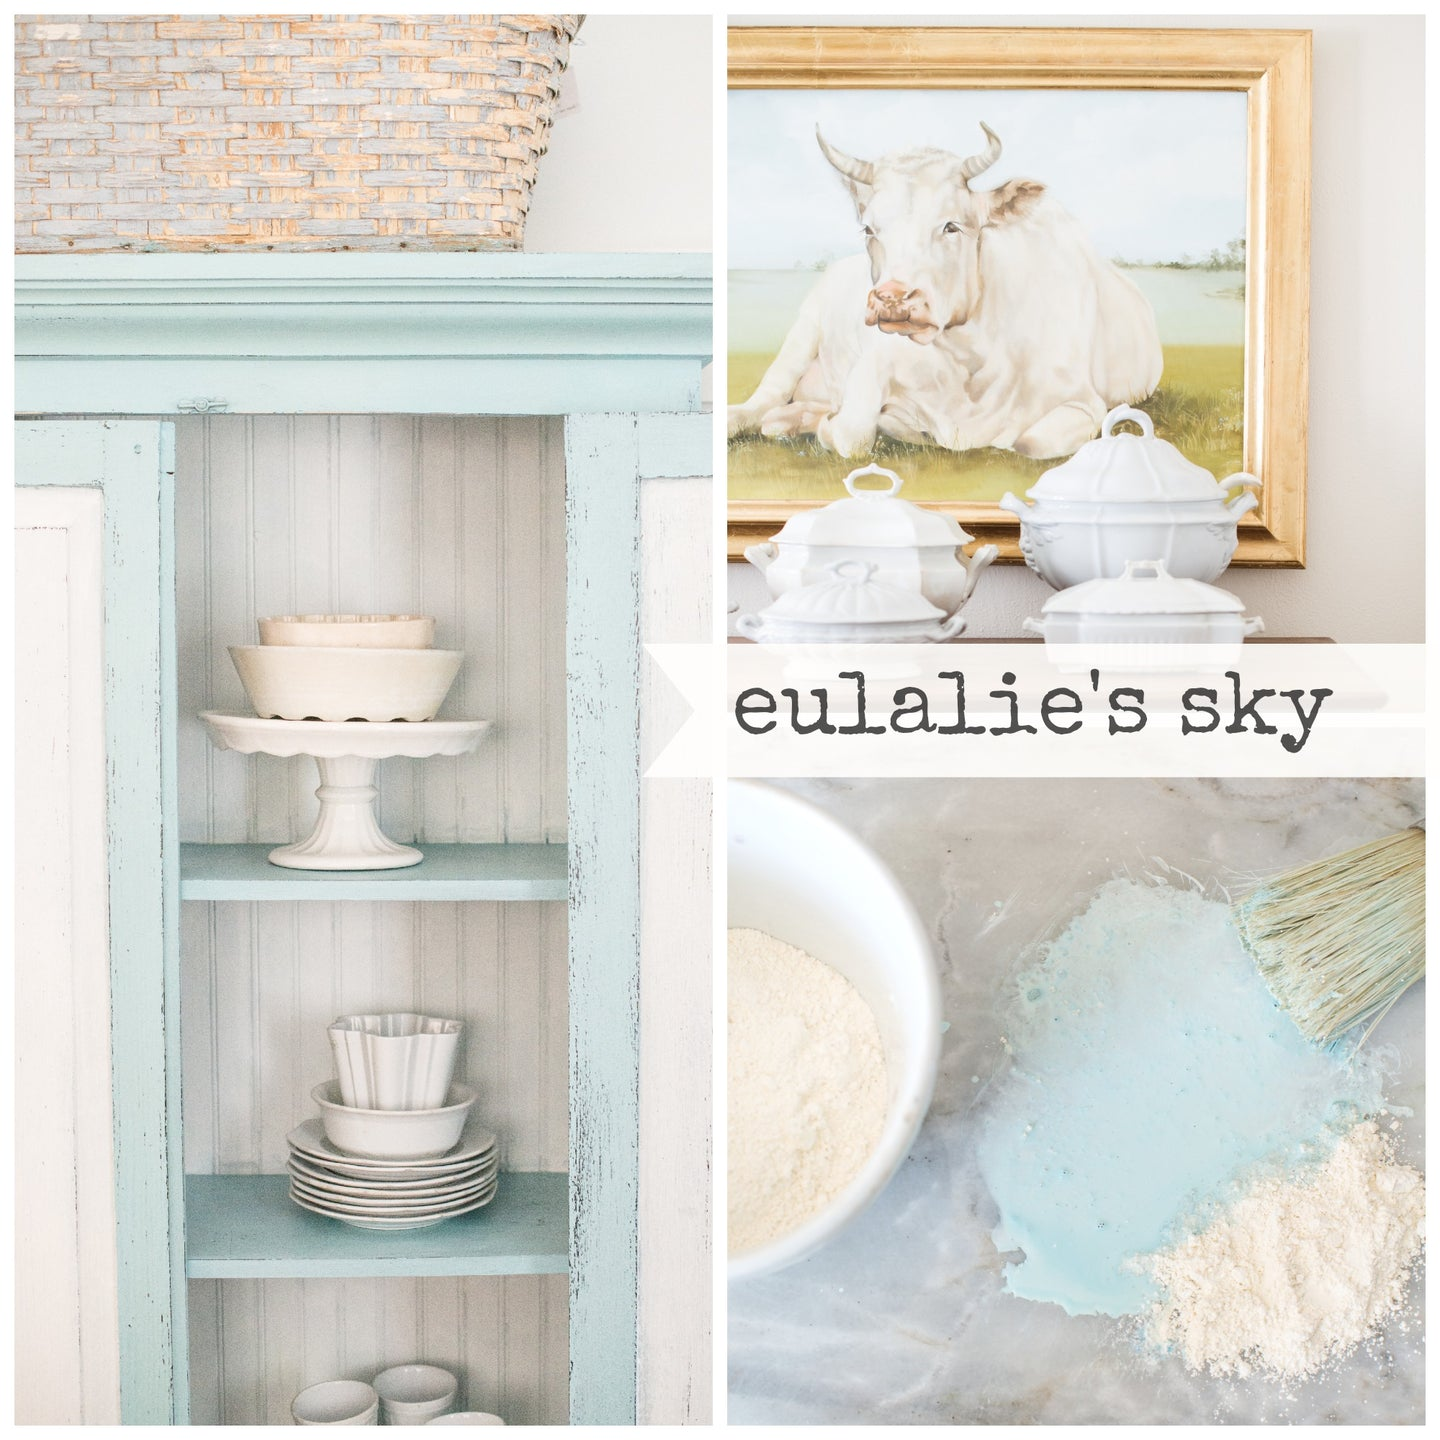 Eulalie's Sky - Miss Mustard Seed Milk Paint 230g